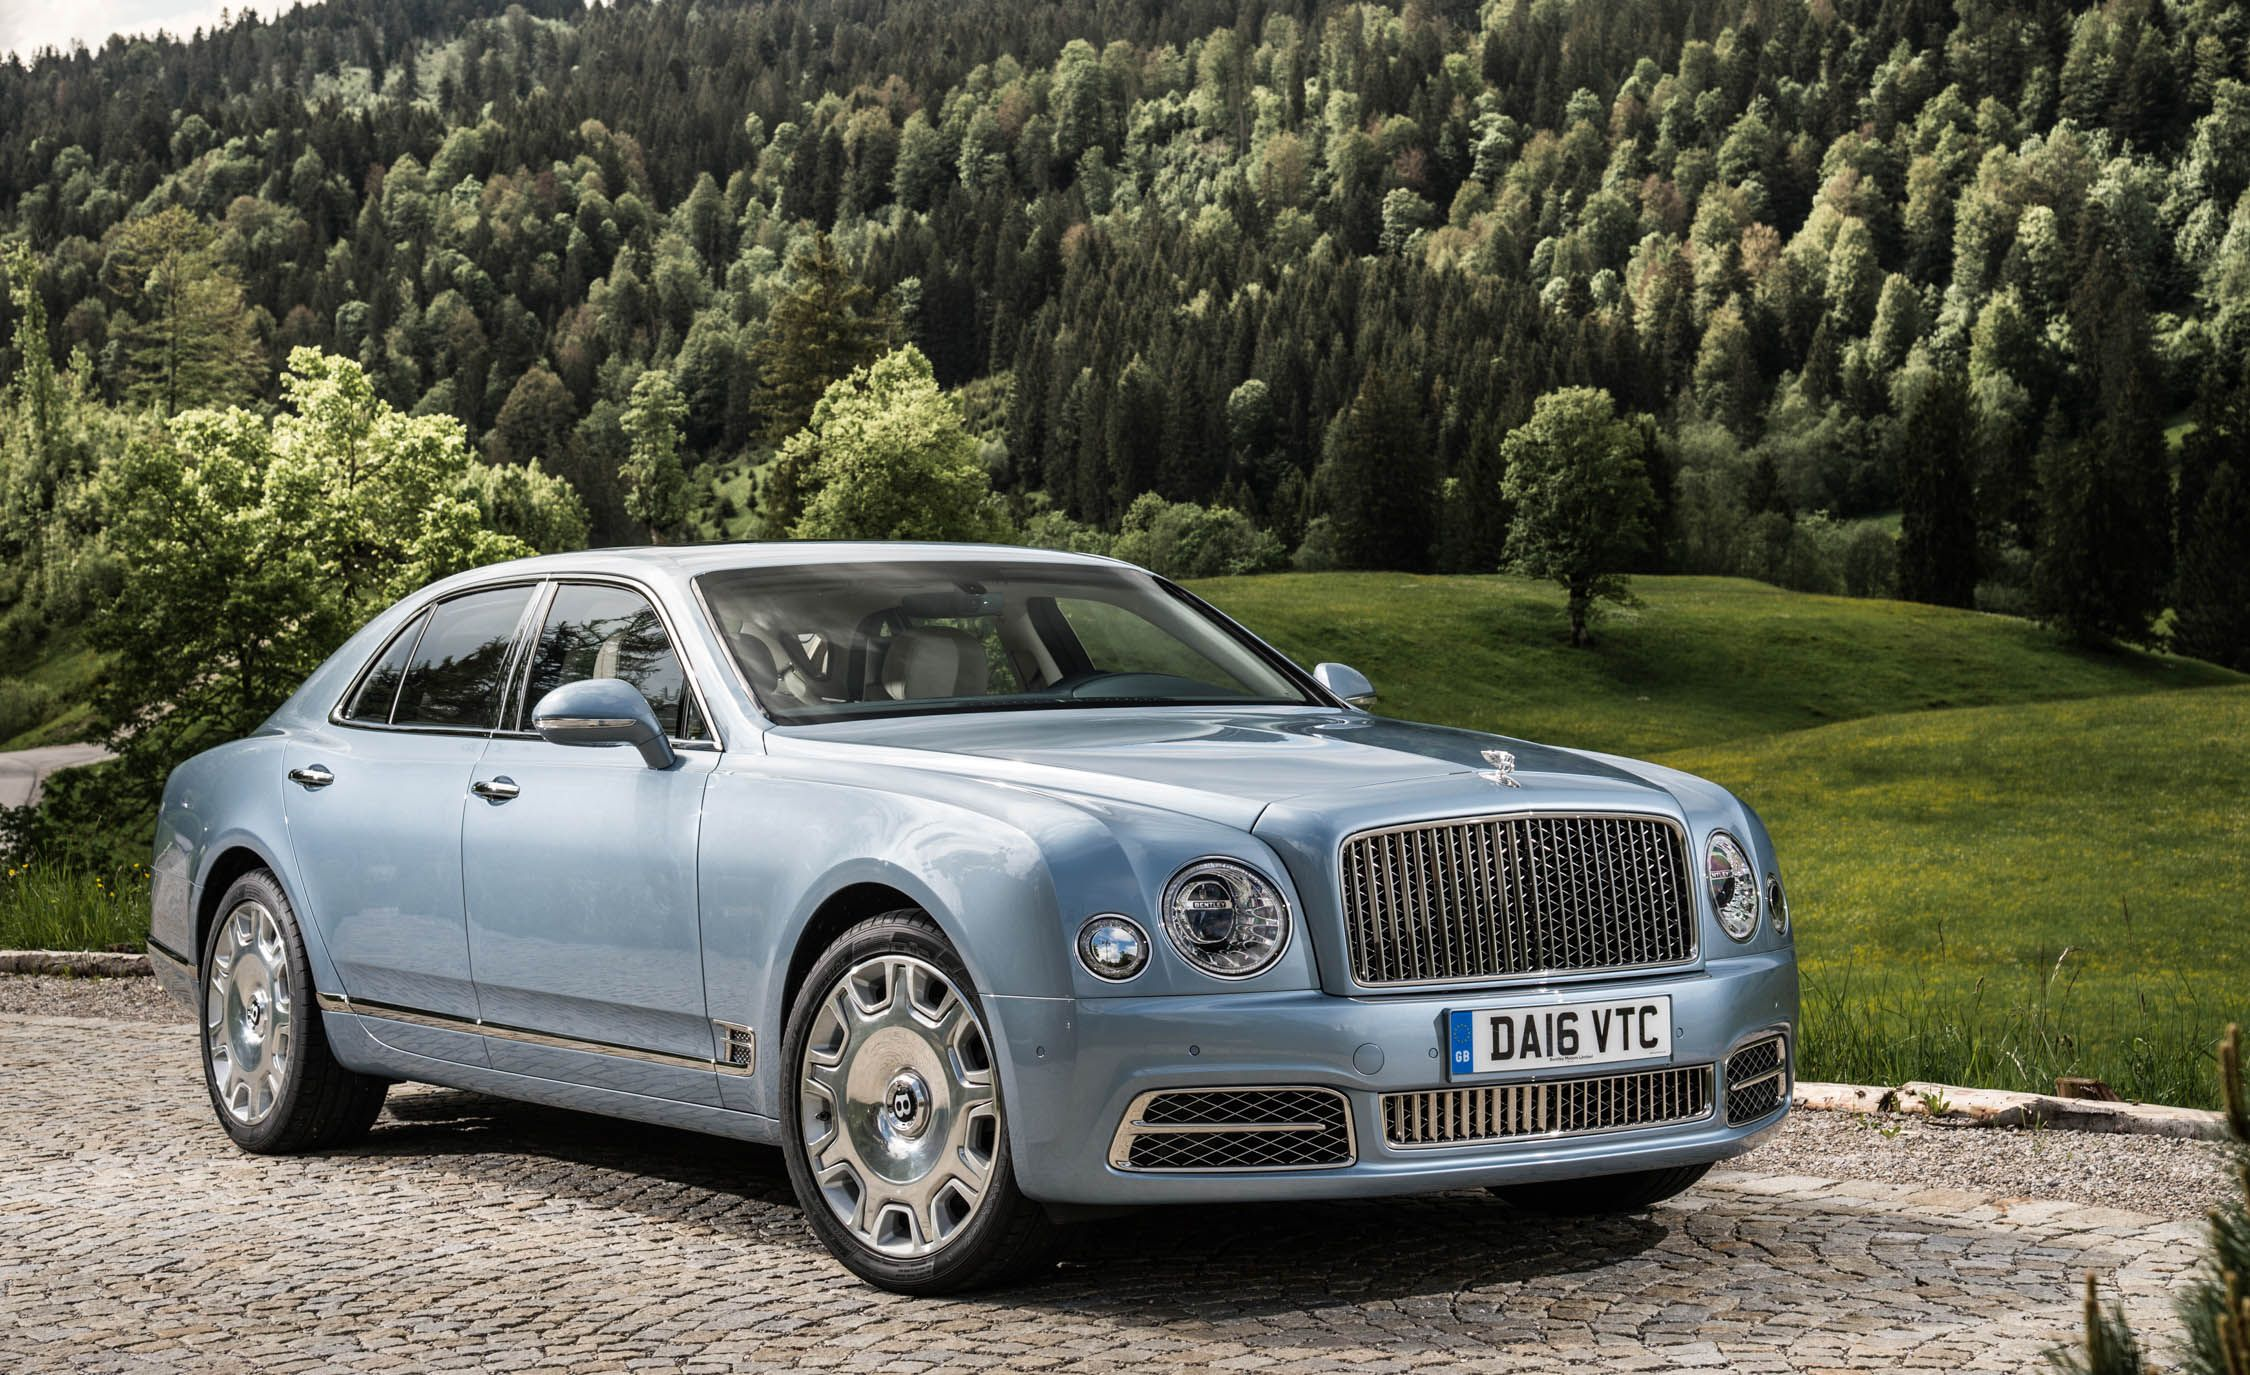 news the of bentley release cost date barnato front specs carwow a is what price car and